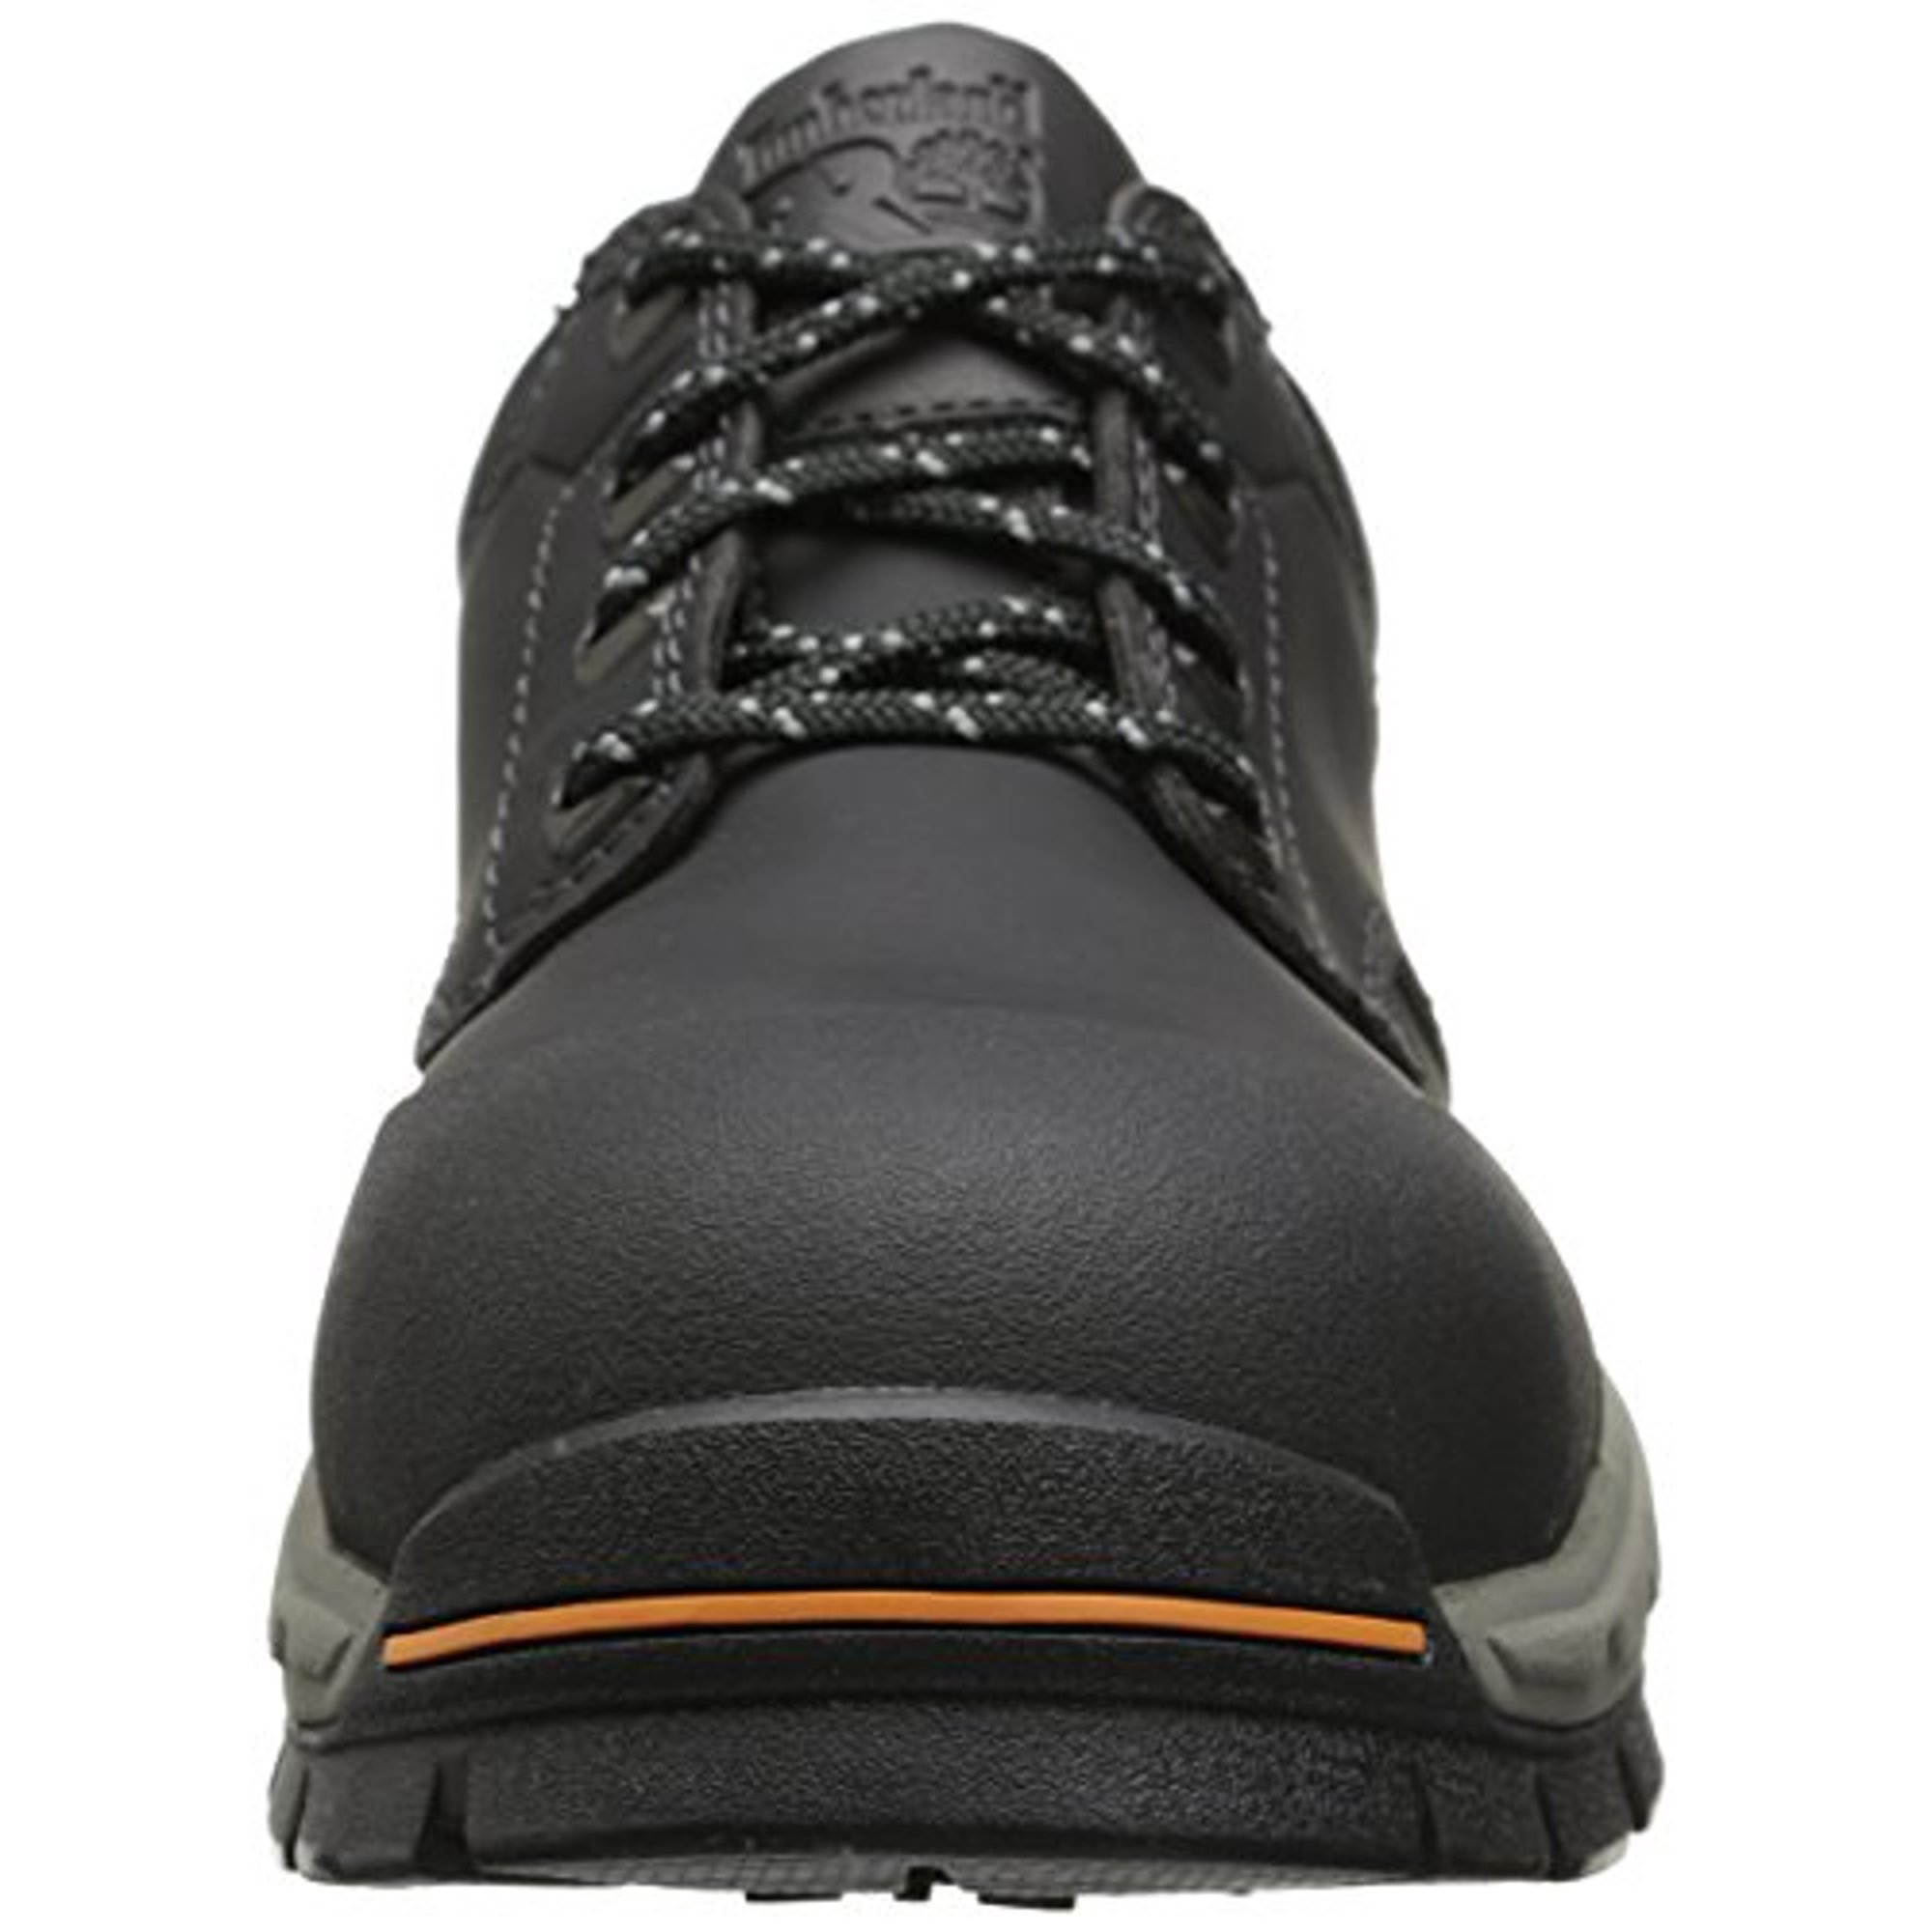 29bef526639 Buy Timberland PRO Men's Stockdale Grip Max OX Alloy Toe Work and ...